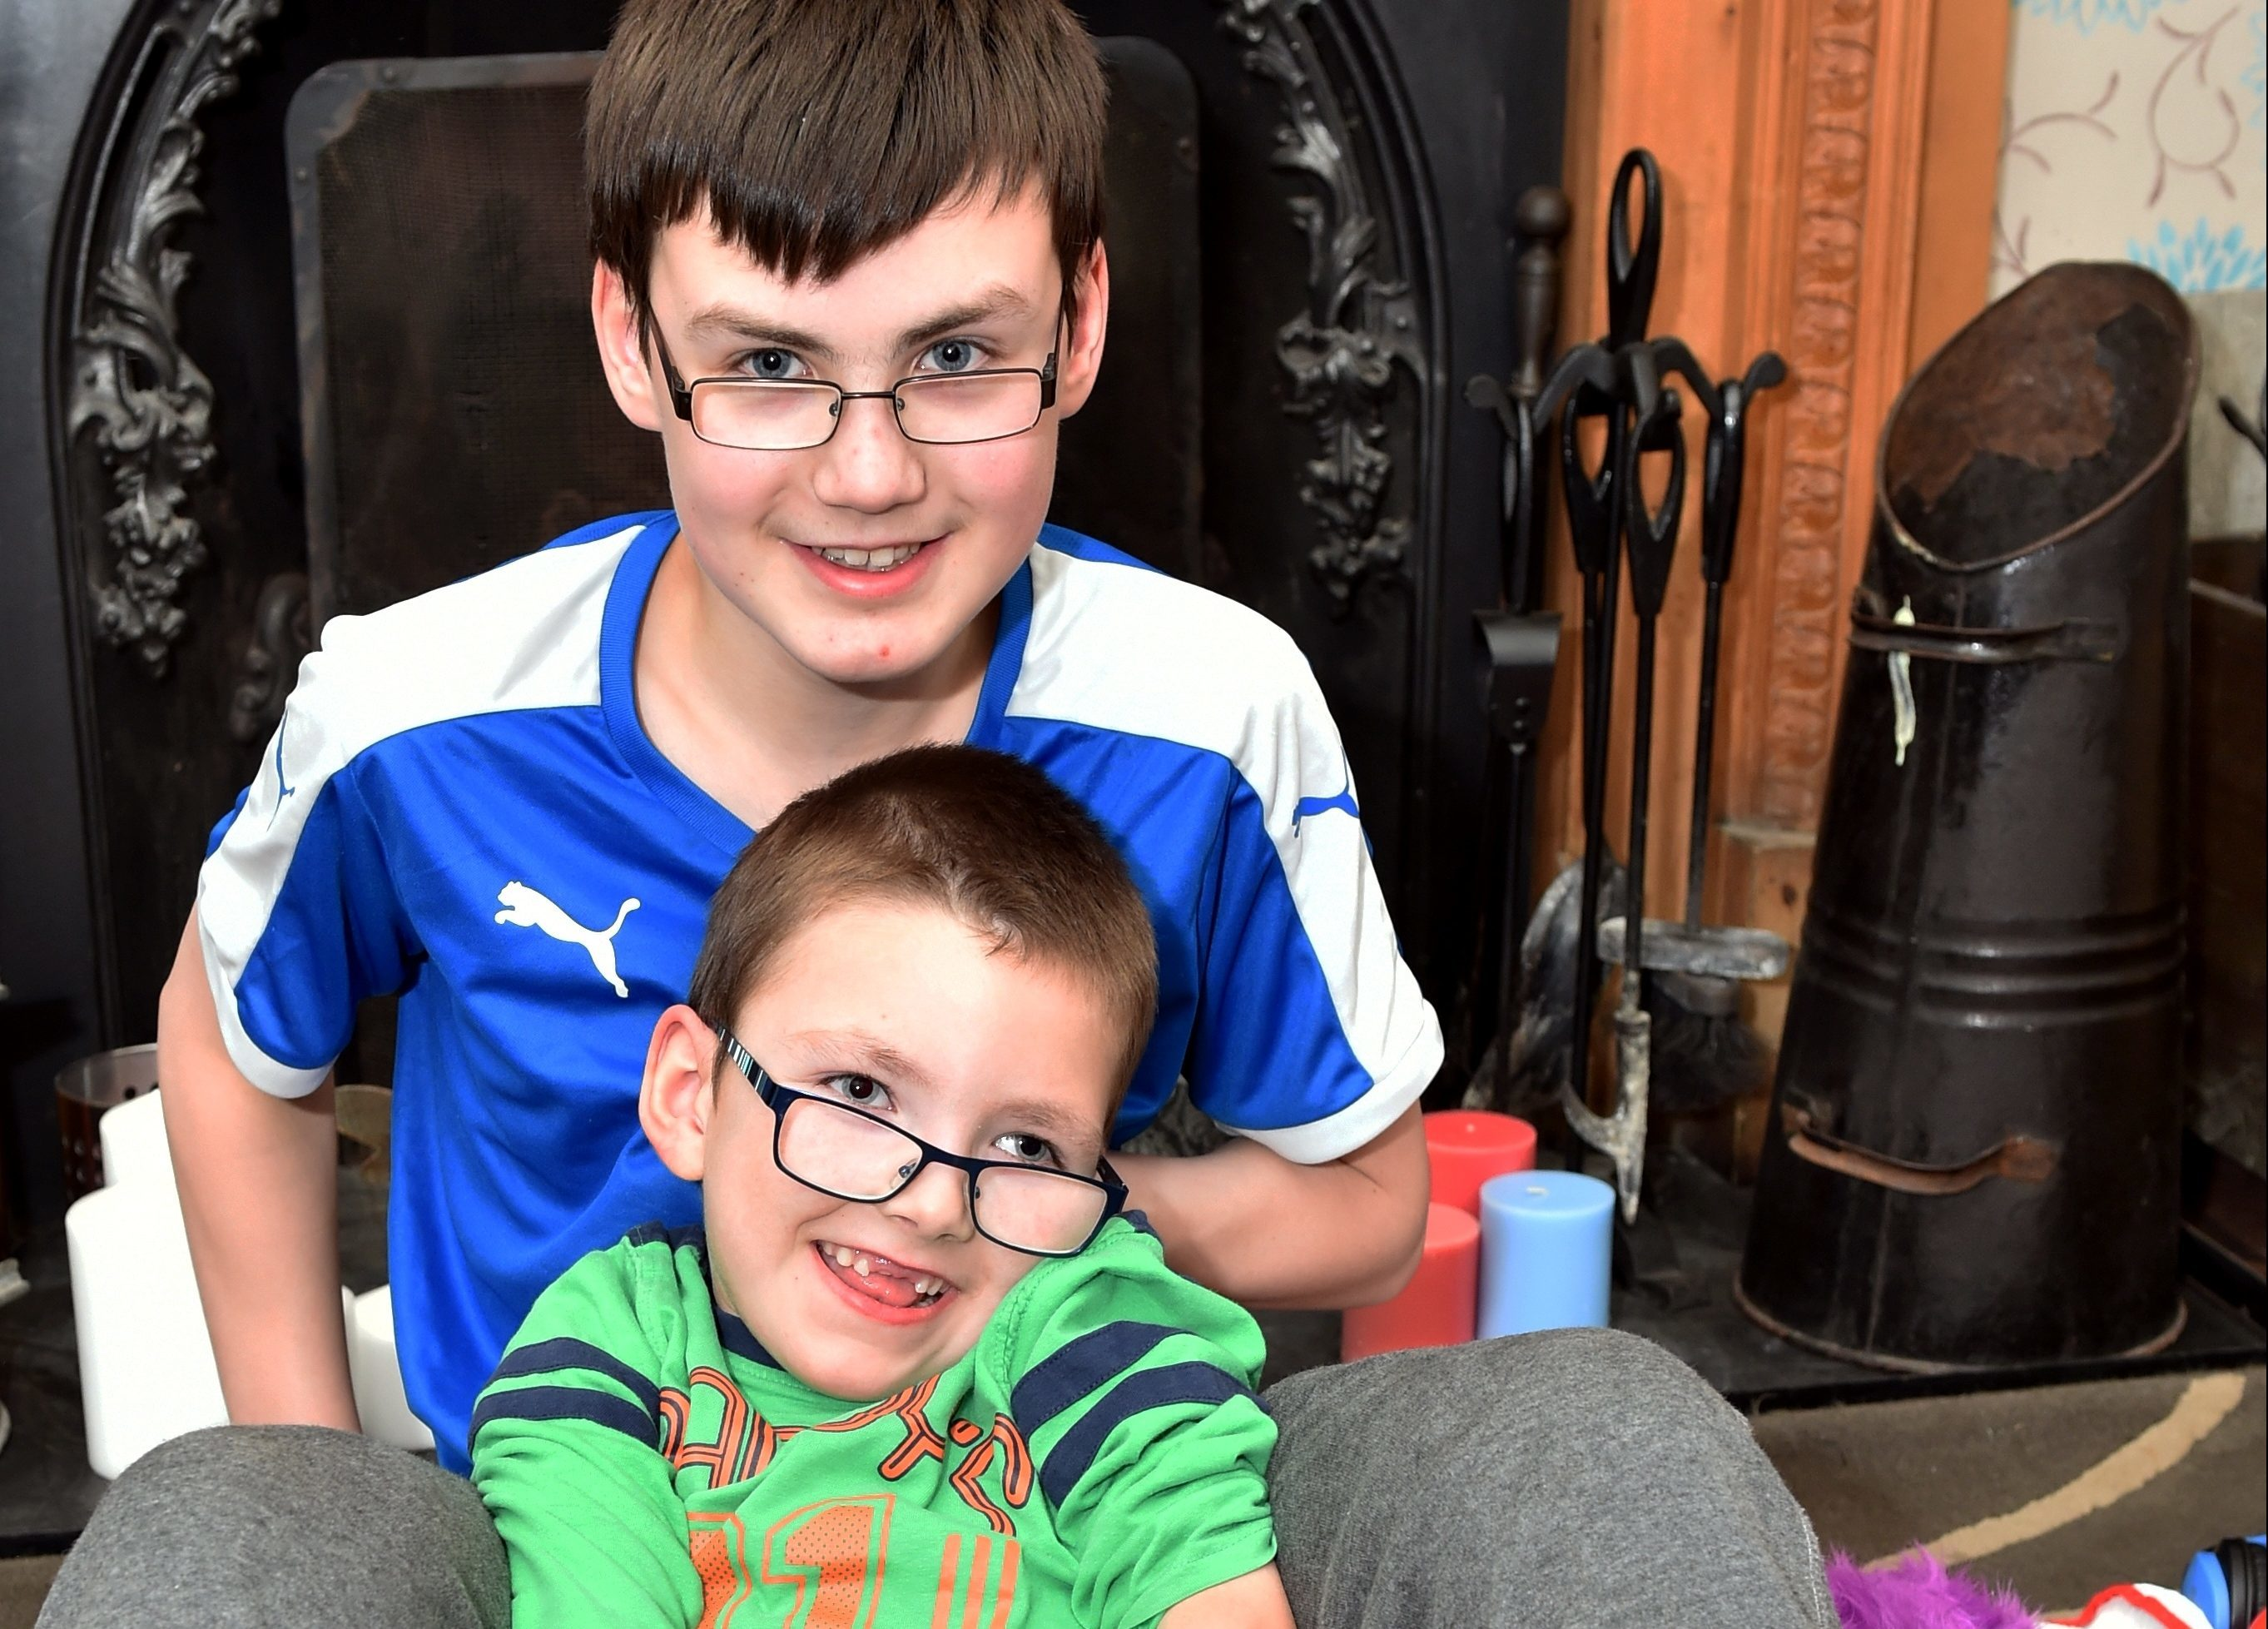 Seven-year-old Aiden Matheson with his older brother James, 13. Pictures by Colin Rennie.